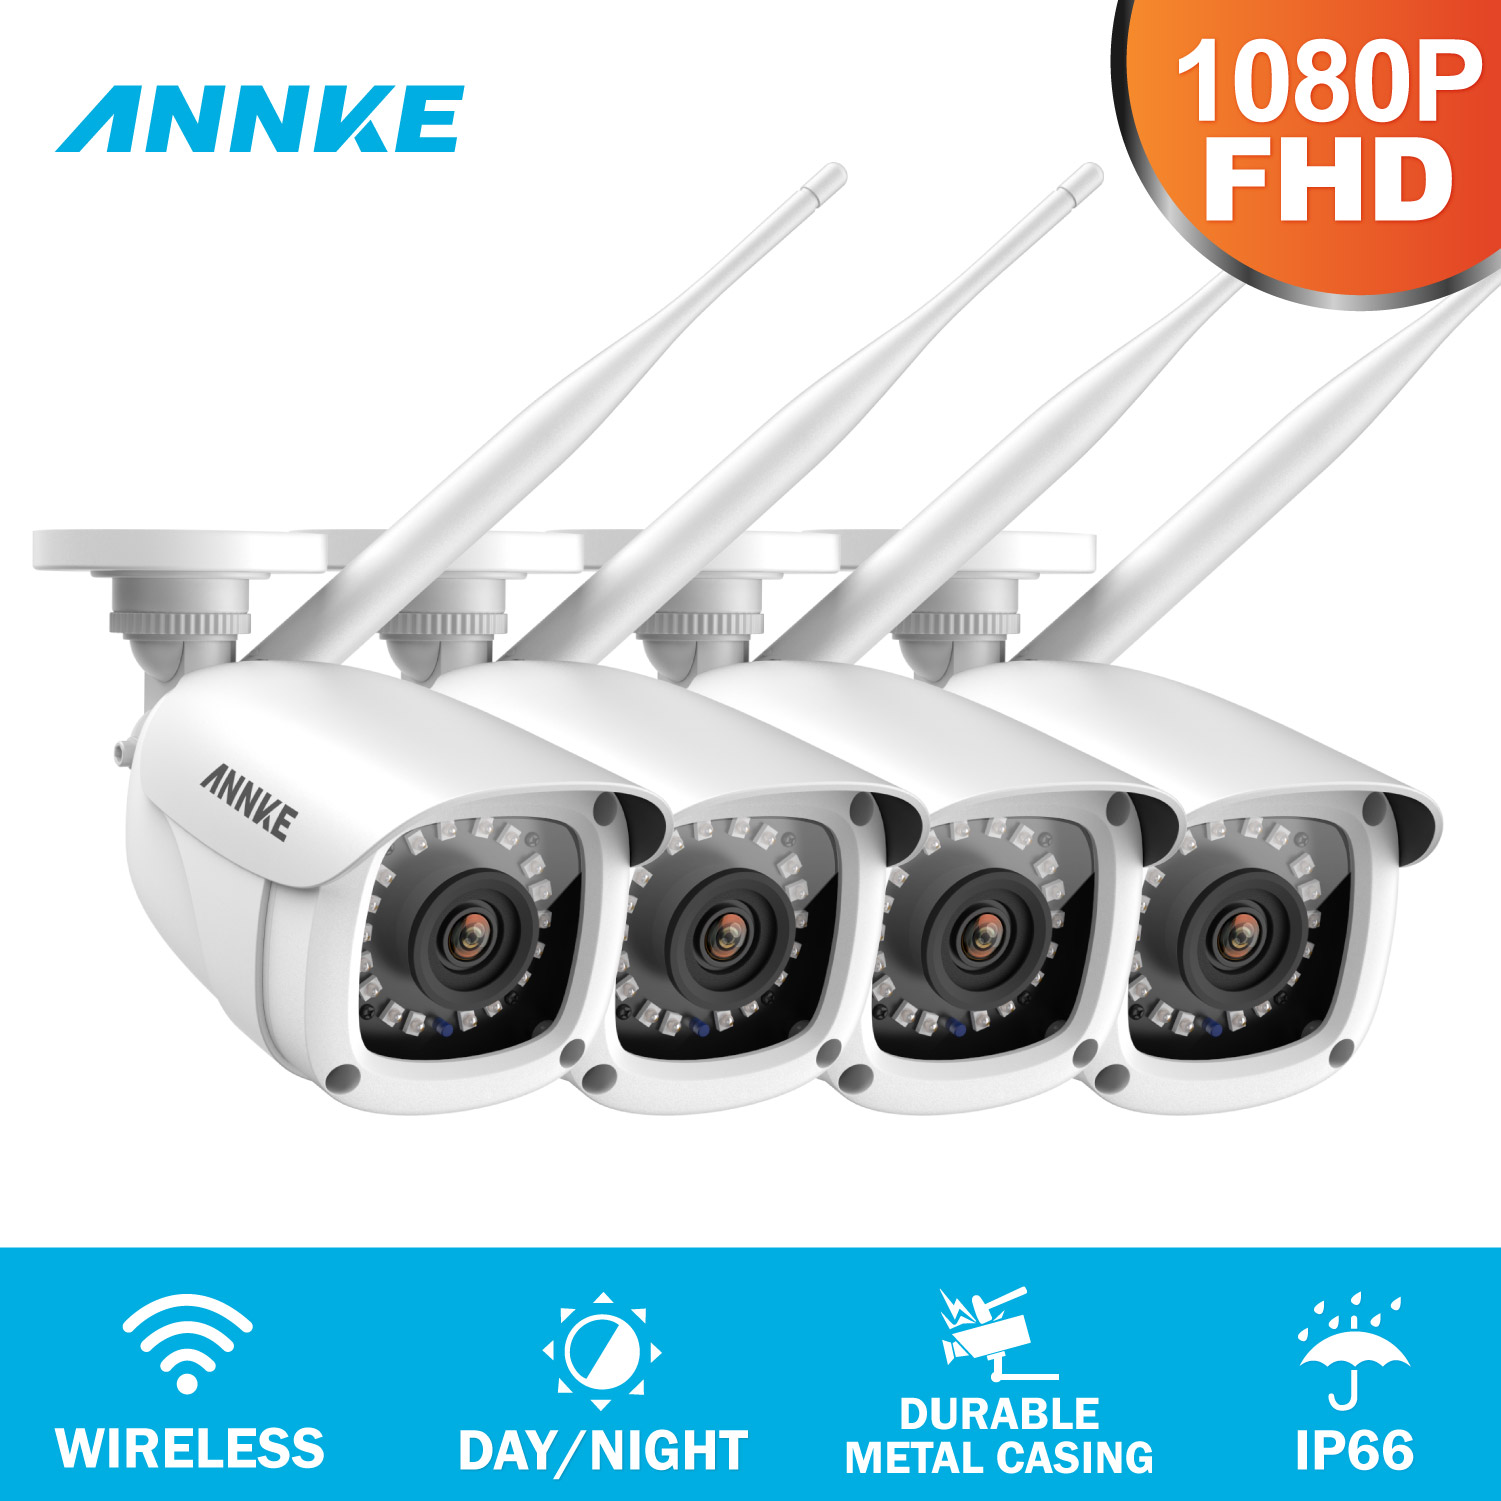 ANNKE 2X 4X FHD 1080P IP WiFi Wireless Video Security Camera System Bullet Weatherproof Camera 100ft Night Vision With Smart IR